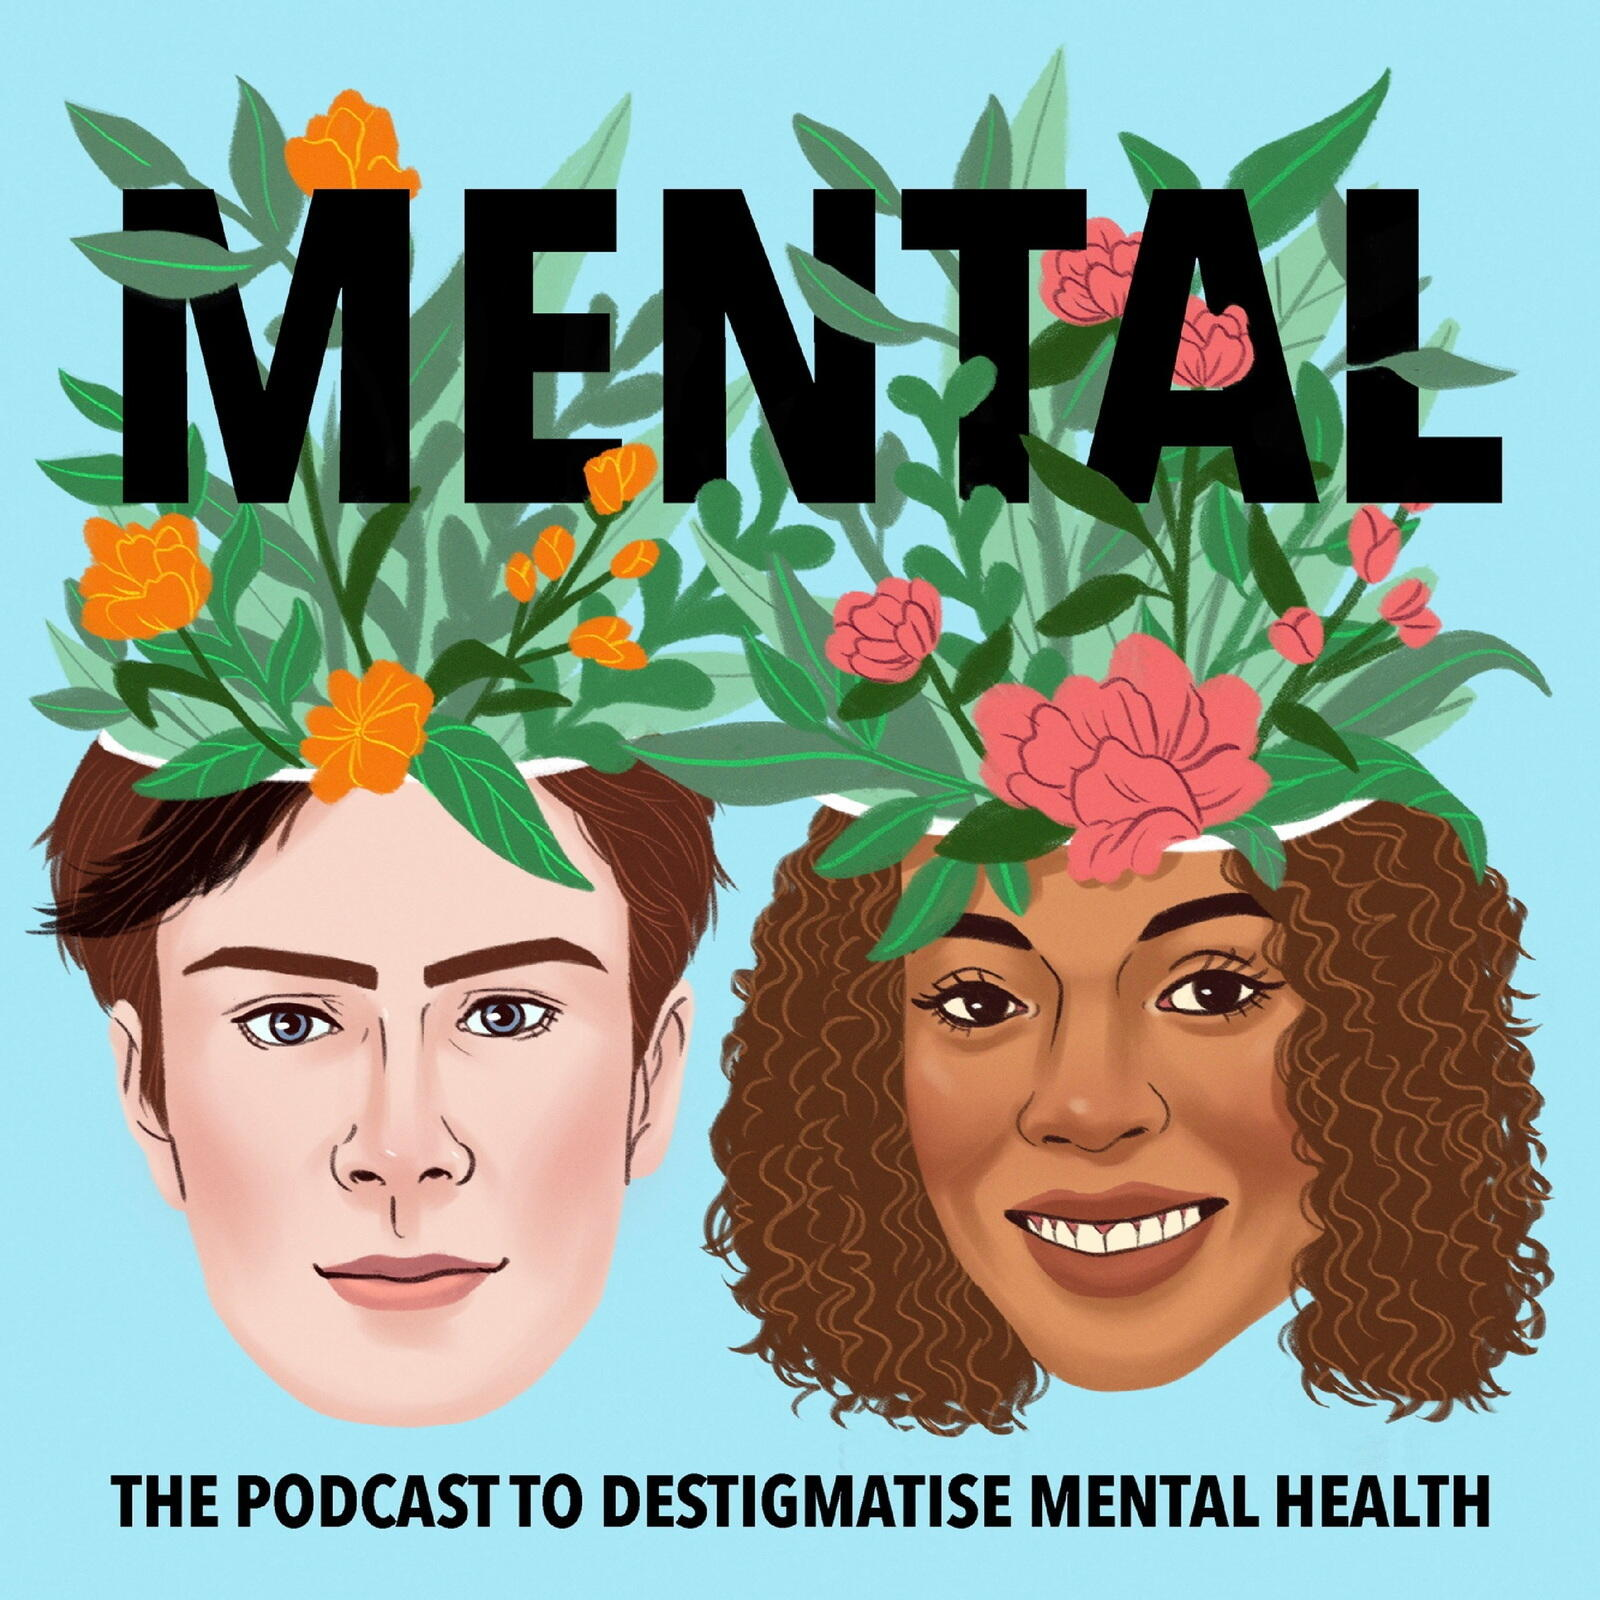 Mental - The Podcast to Destigmatise Mental Health - 180: Counselling - The second therapist I tried changed everything and I'm so glad I when back with Allyson Dinneen